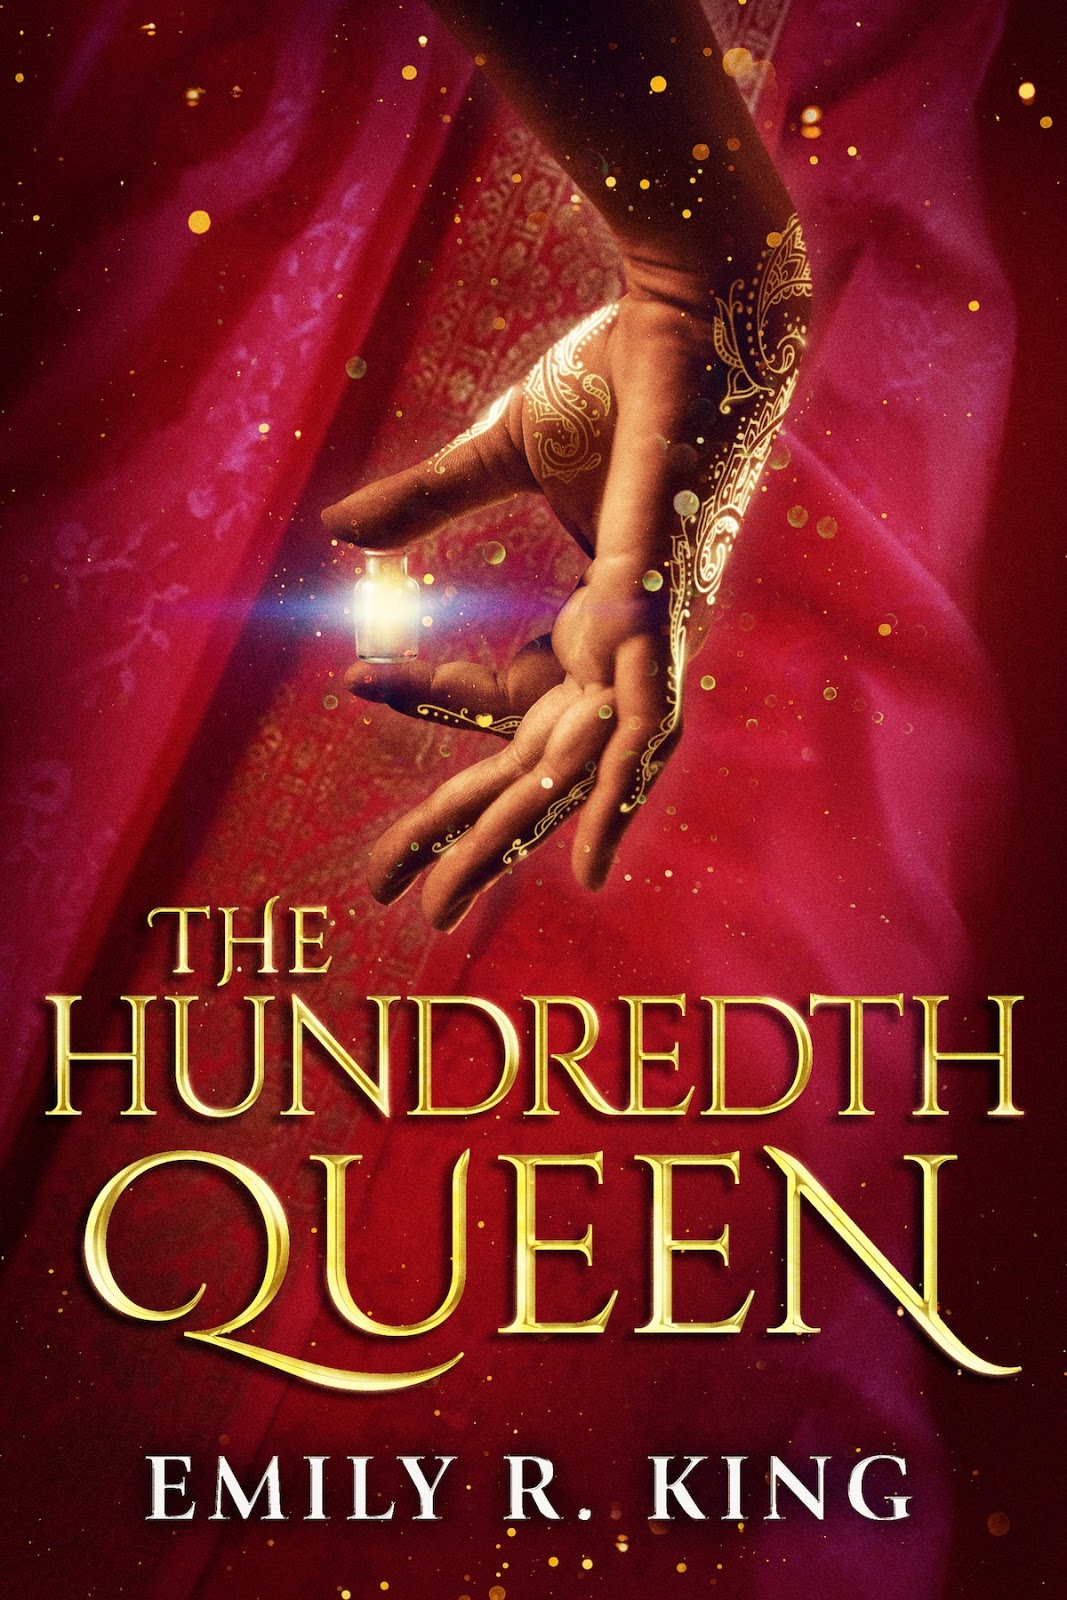 Fashion Book Cover Queen ~ Chasing faerytales check out the cover of hundredth